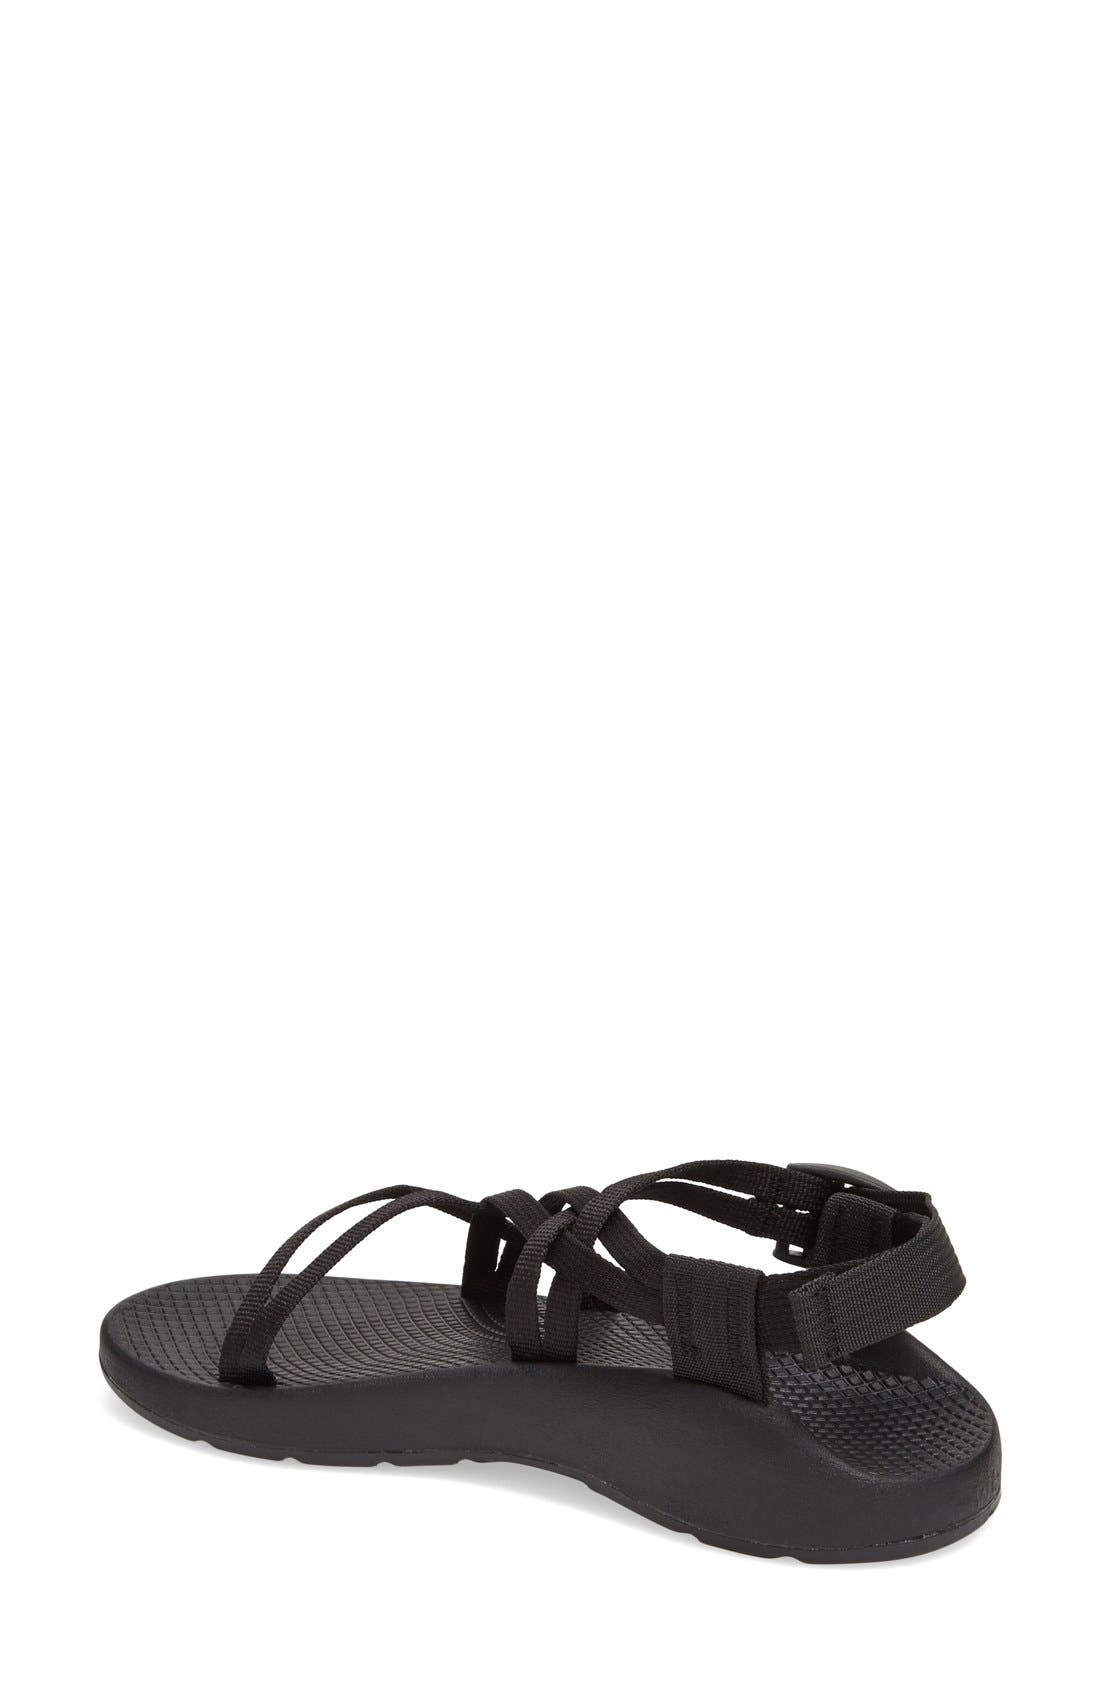 Alternate Image 2  - Chaco 'ZX1 Yampa' Double Strap Sport Sandal (Women)